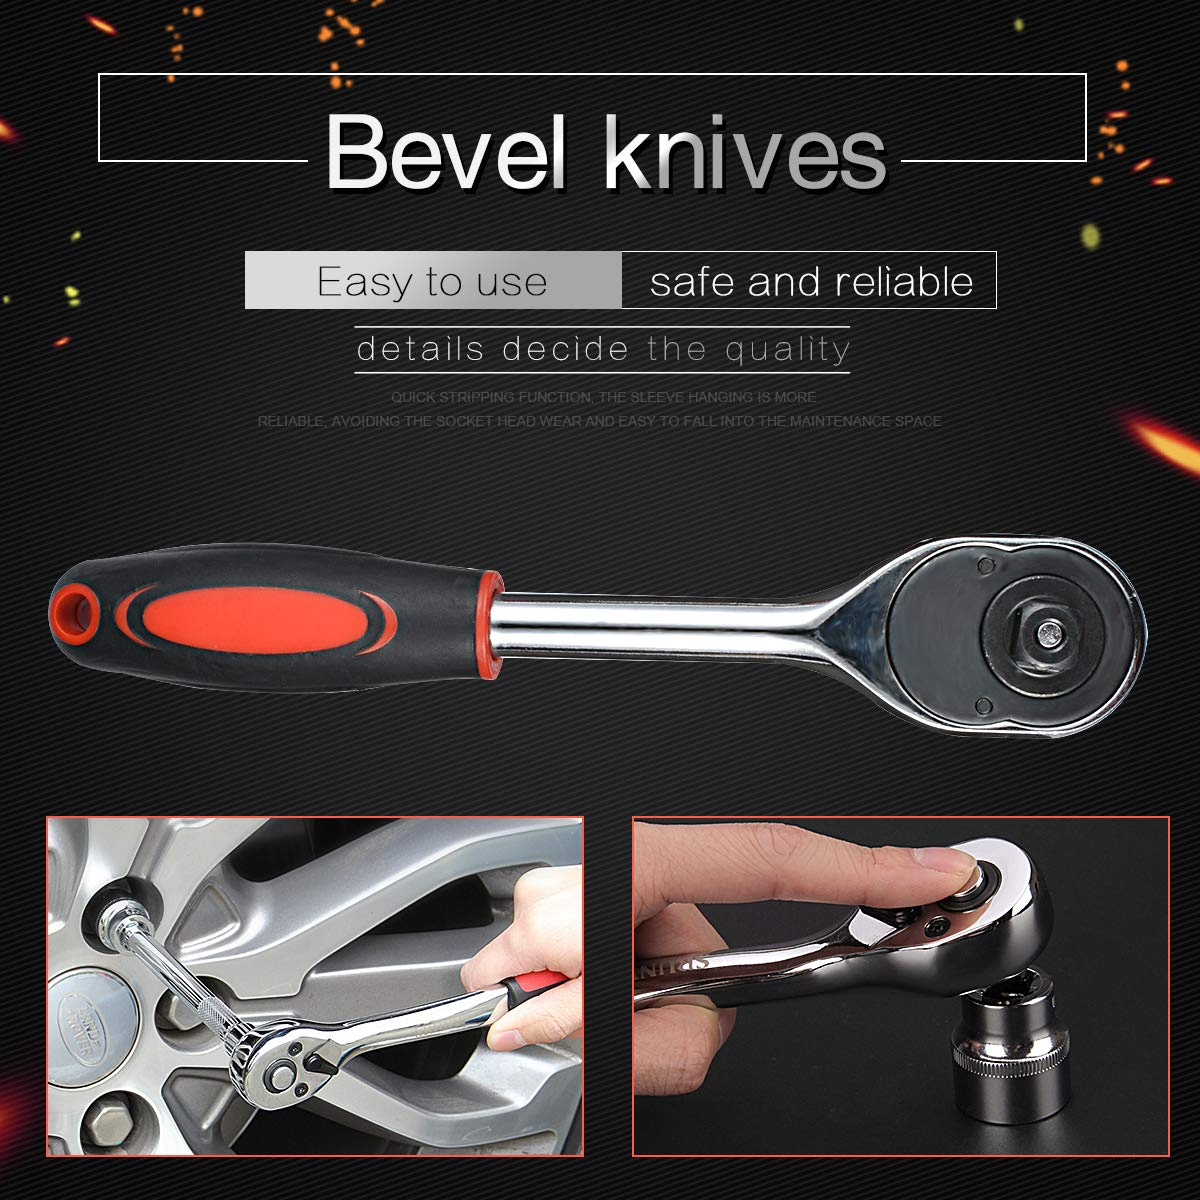 1//4 Inch Wrench 155mm Length 24 Teeth Chrome Vanadium Steel Drive Pear Head Quick Released Ratchet Handle and Extension Bar KATUR Ratchet Wrench for Socket